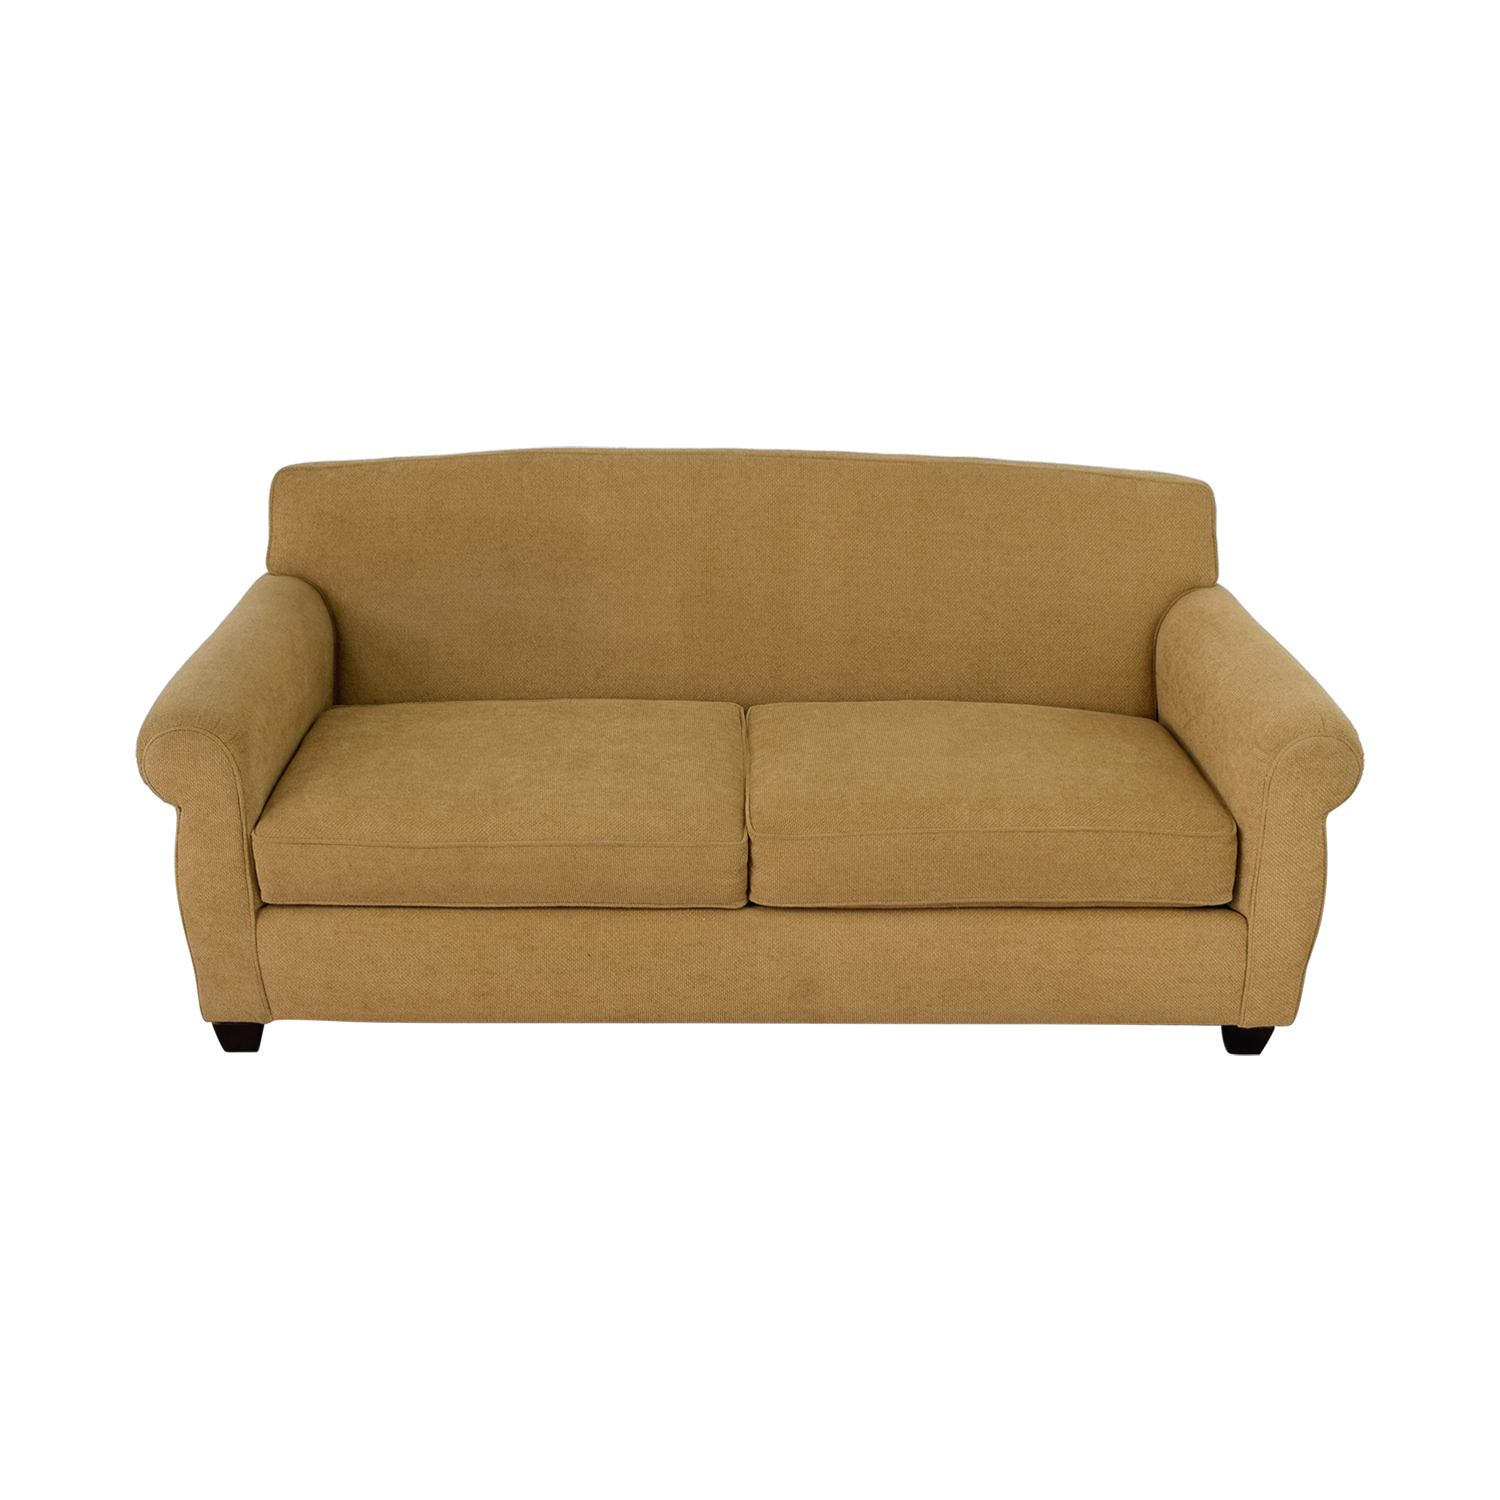 buy Thomasville Tan Two-Cushion Sofa Thomasville Sofas